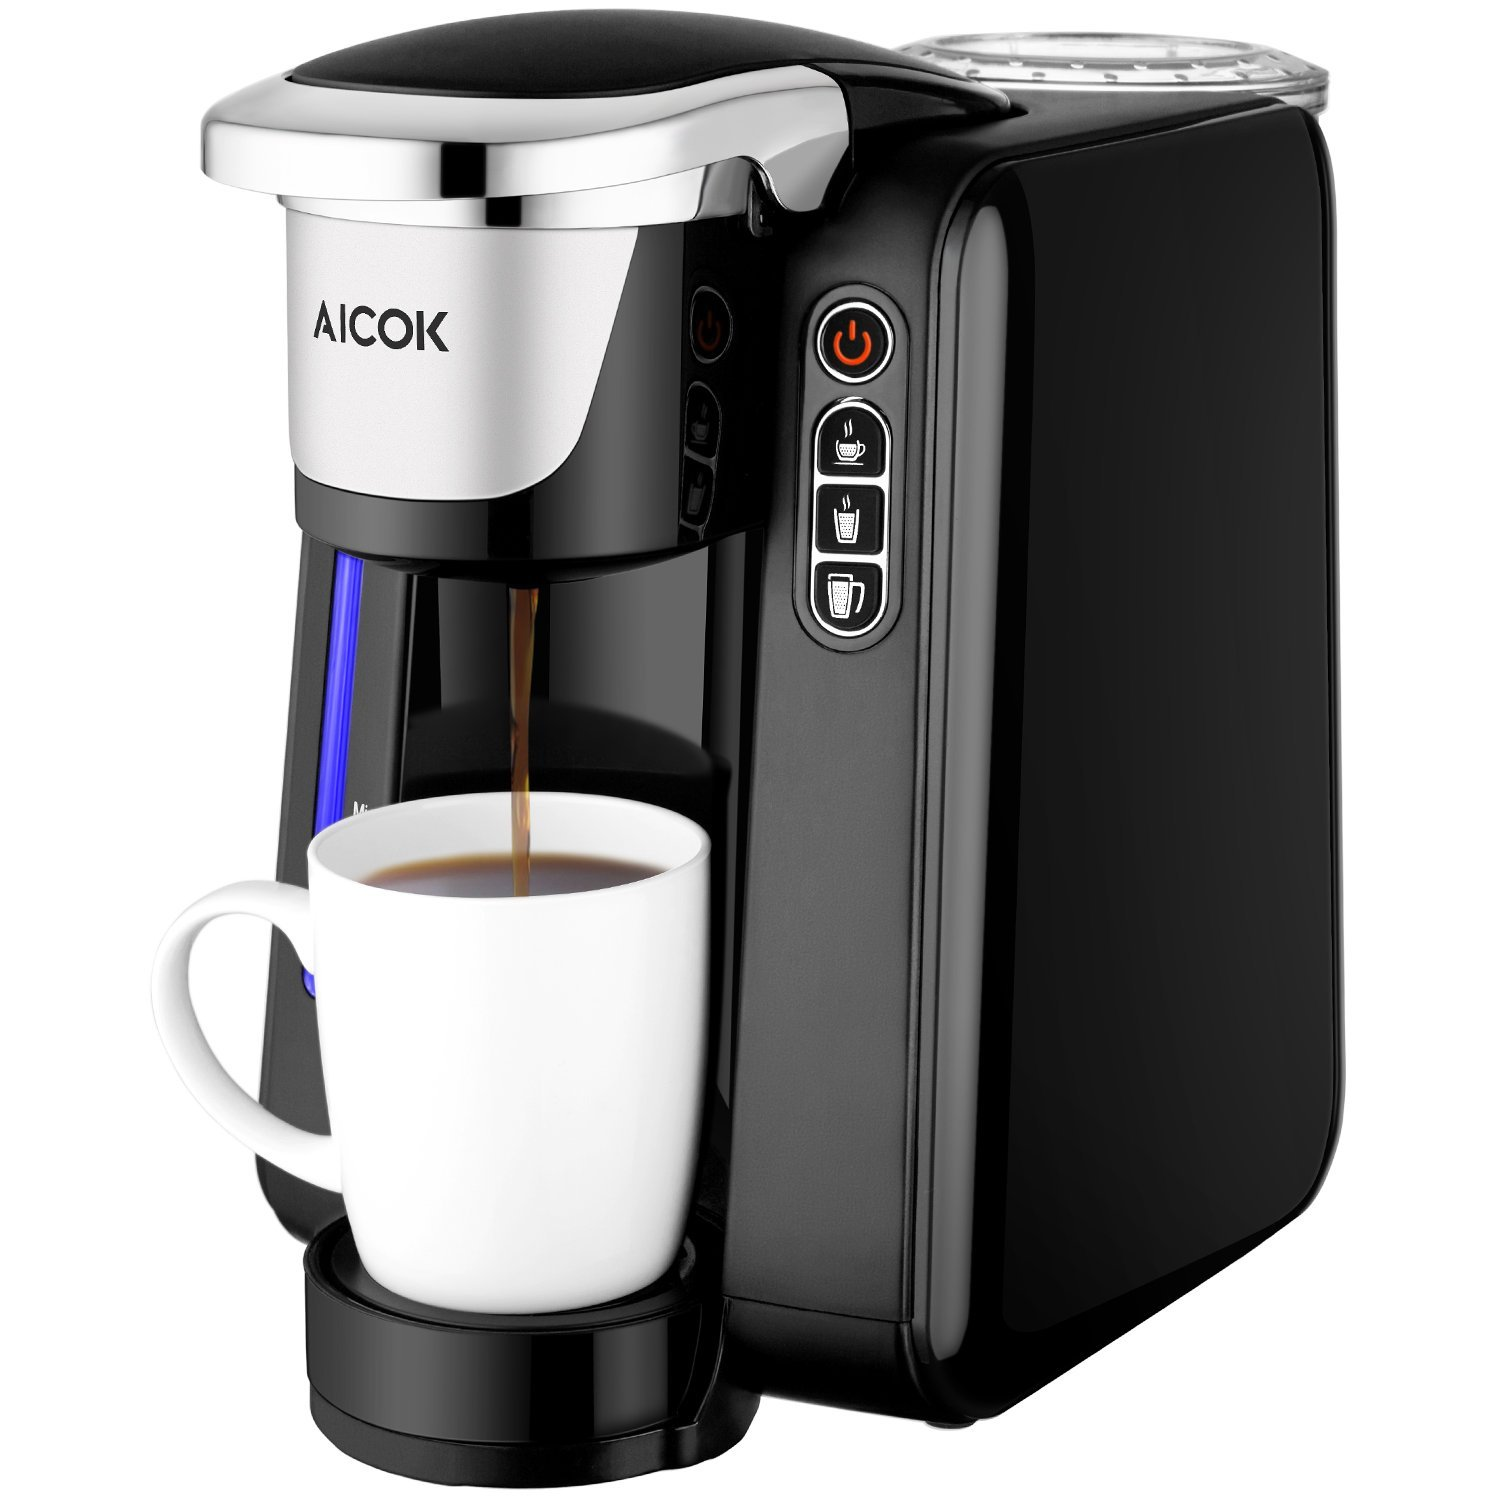 Aicok Single Serve Pod Coffee Maker